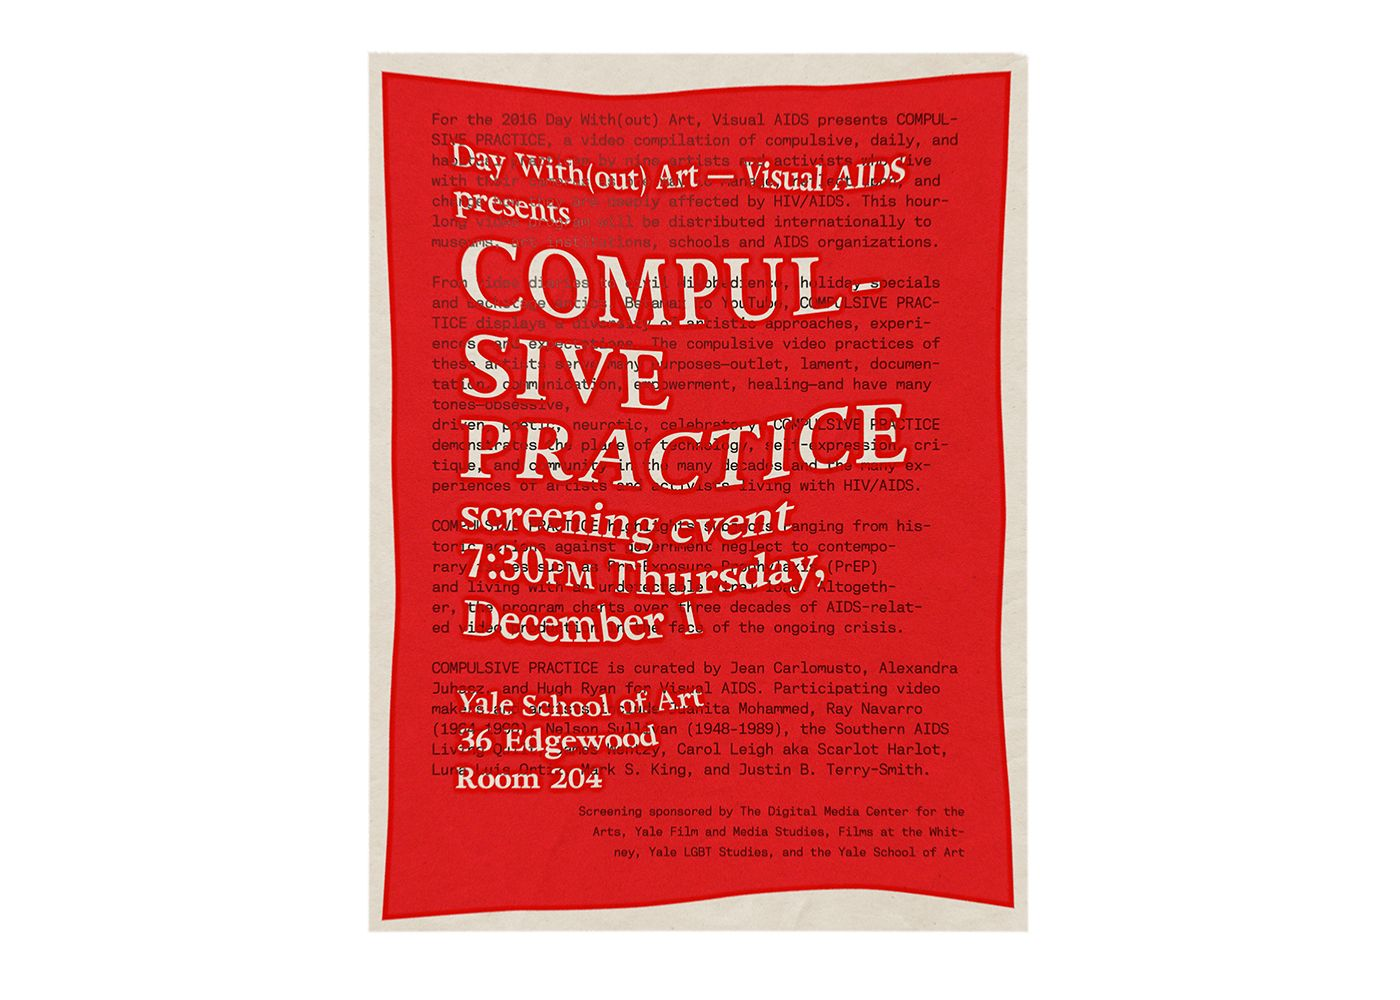 Poster for Compulsive Practice screening event, designed for Yale University Digital Media Center for the Arts